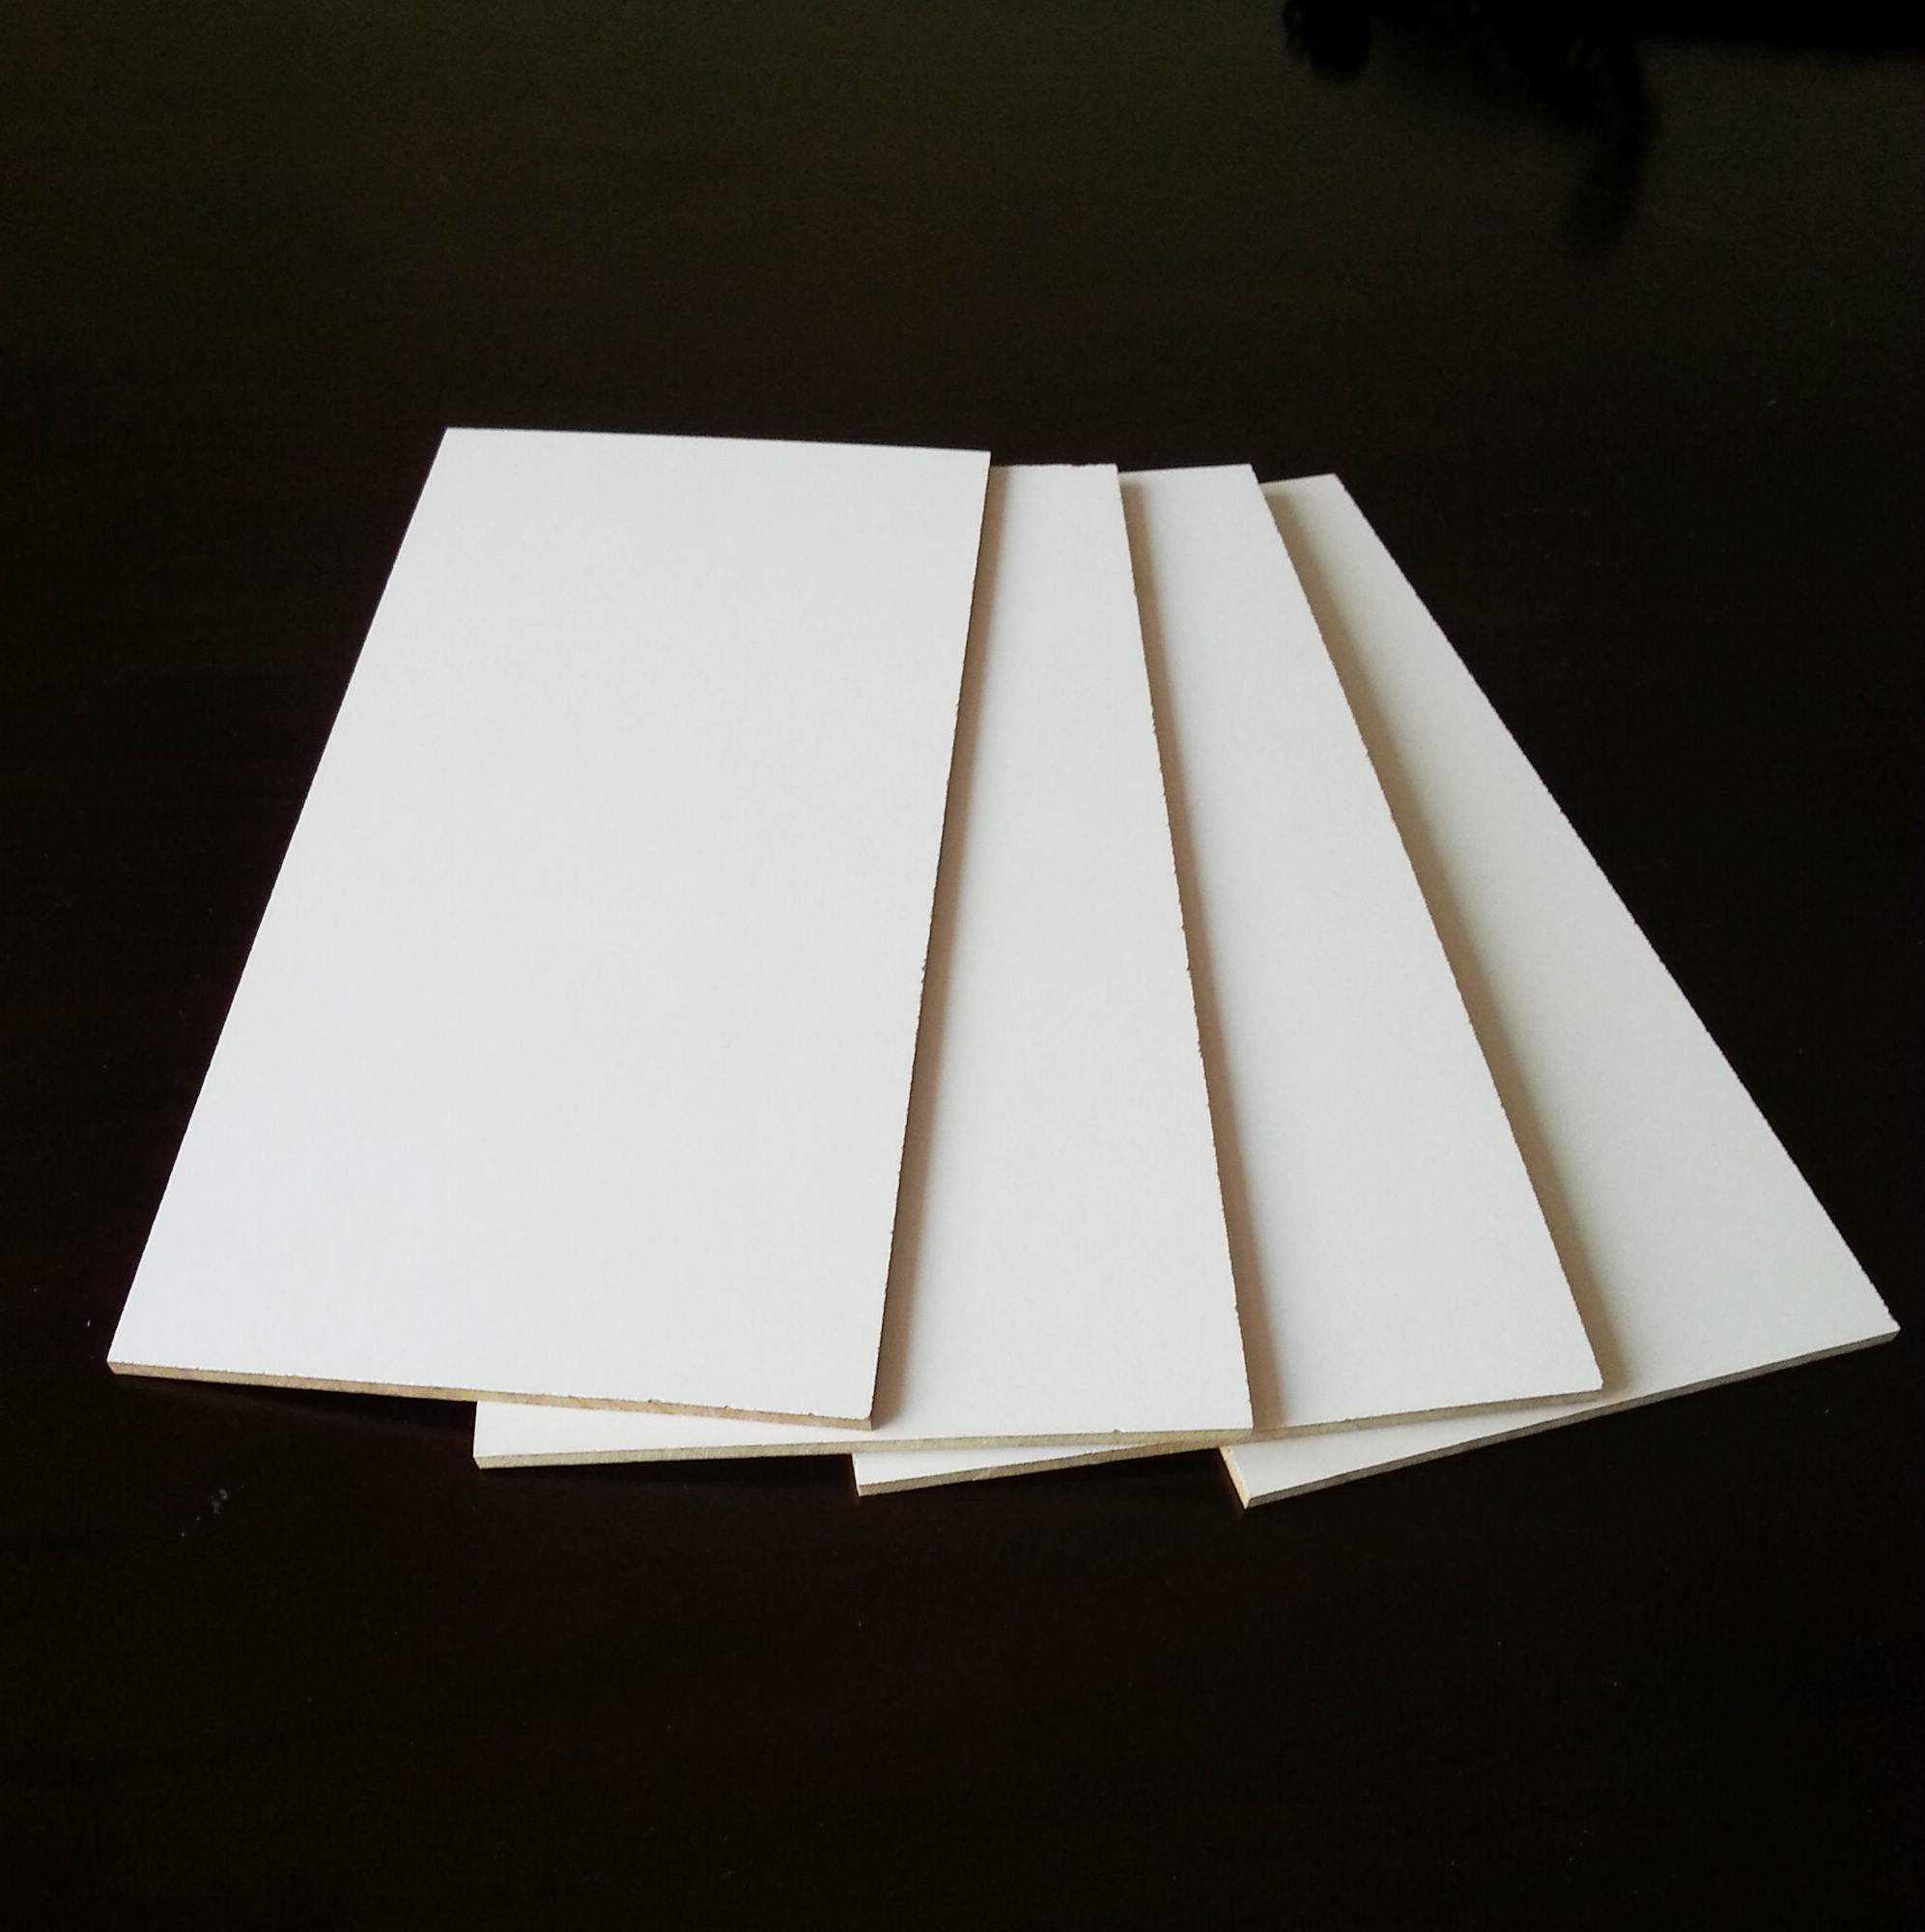 15mm melamine faced MDF board for door/wall panel/cabinet/furniture/photo frame and packing